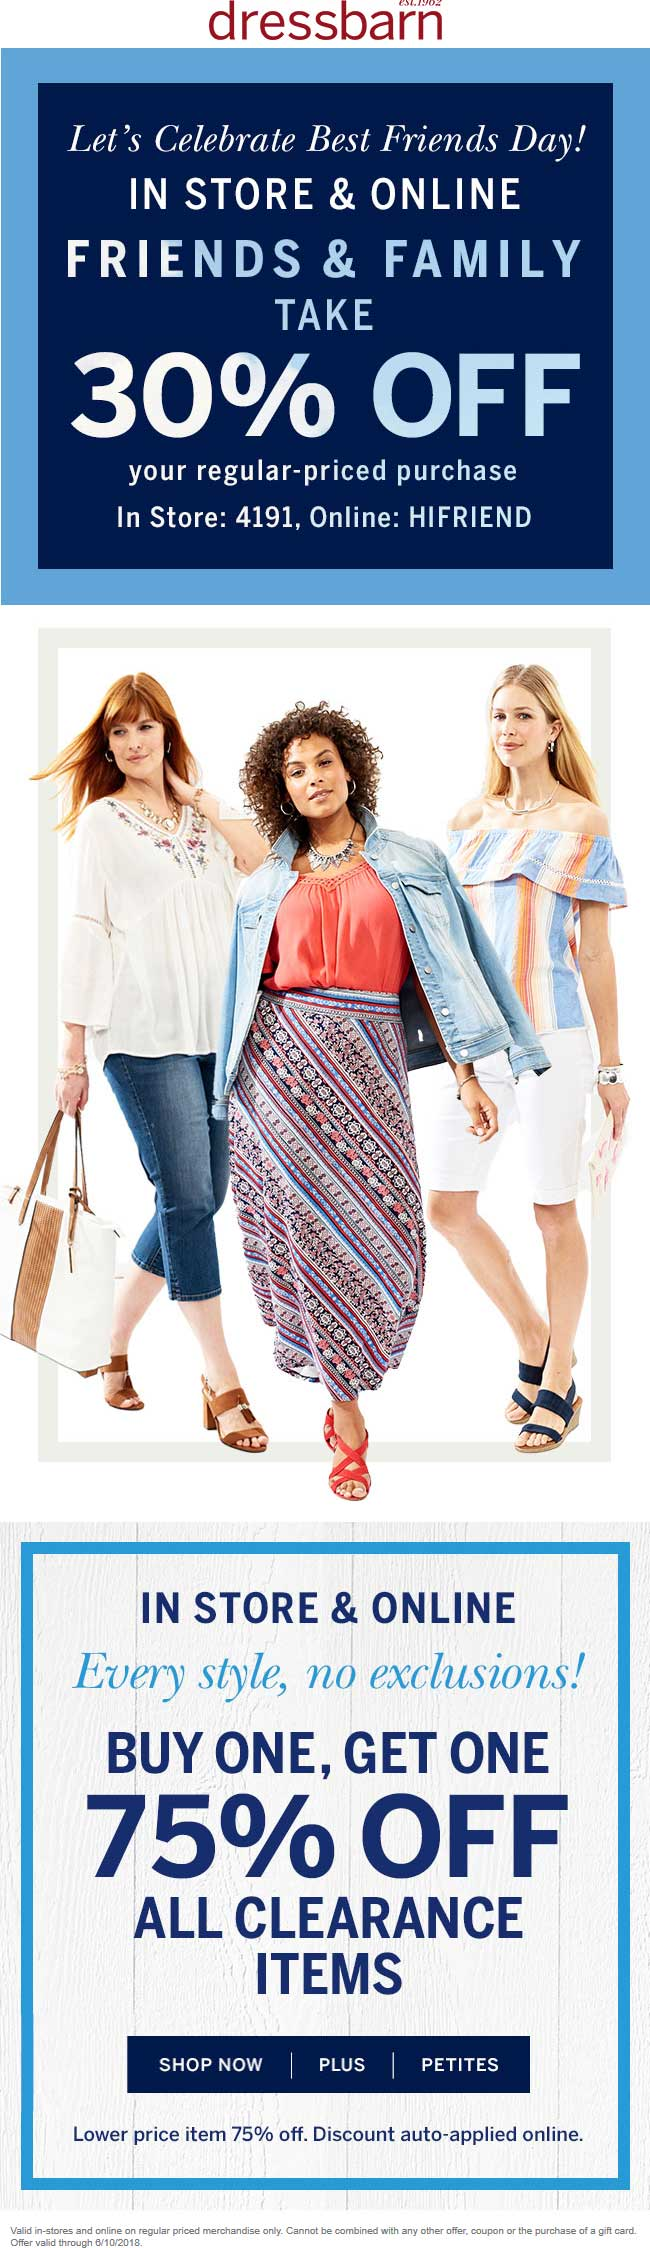 Dressbarn.com Promo Coupon 30% off at Dressbarn, or online via promo code HIFRIEND